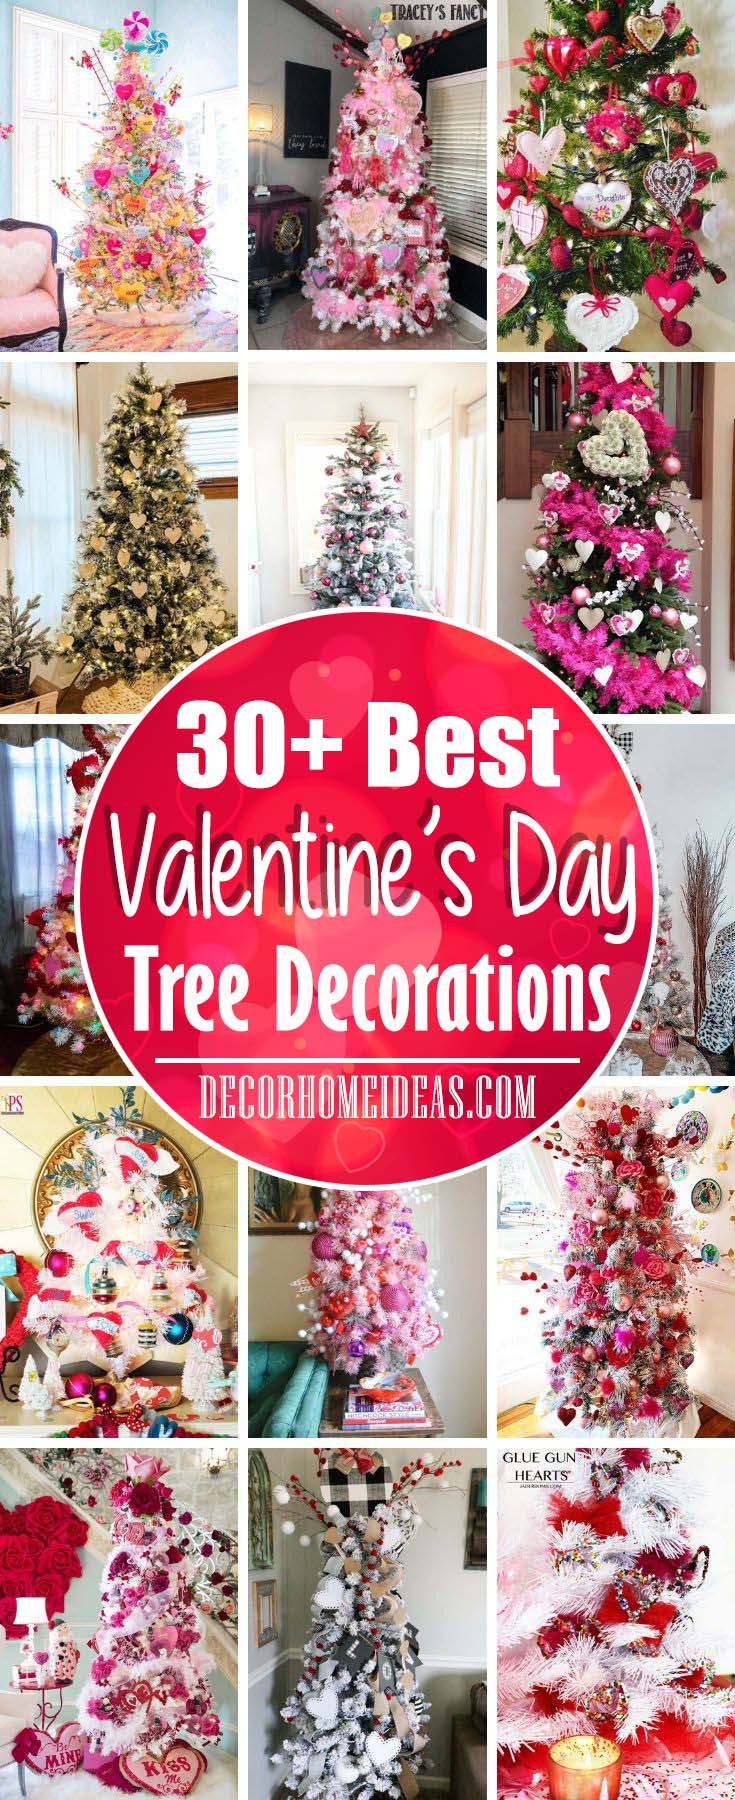 Best Valentine Tree Decorations. Valentine's Day trees decorated in pink and red or with rustic look. #diy #valentine #tree #decorhomeideas